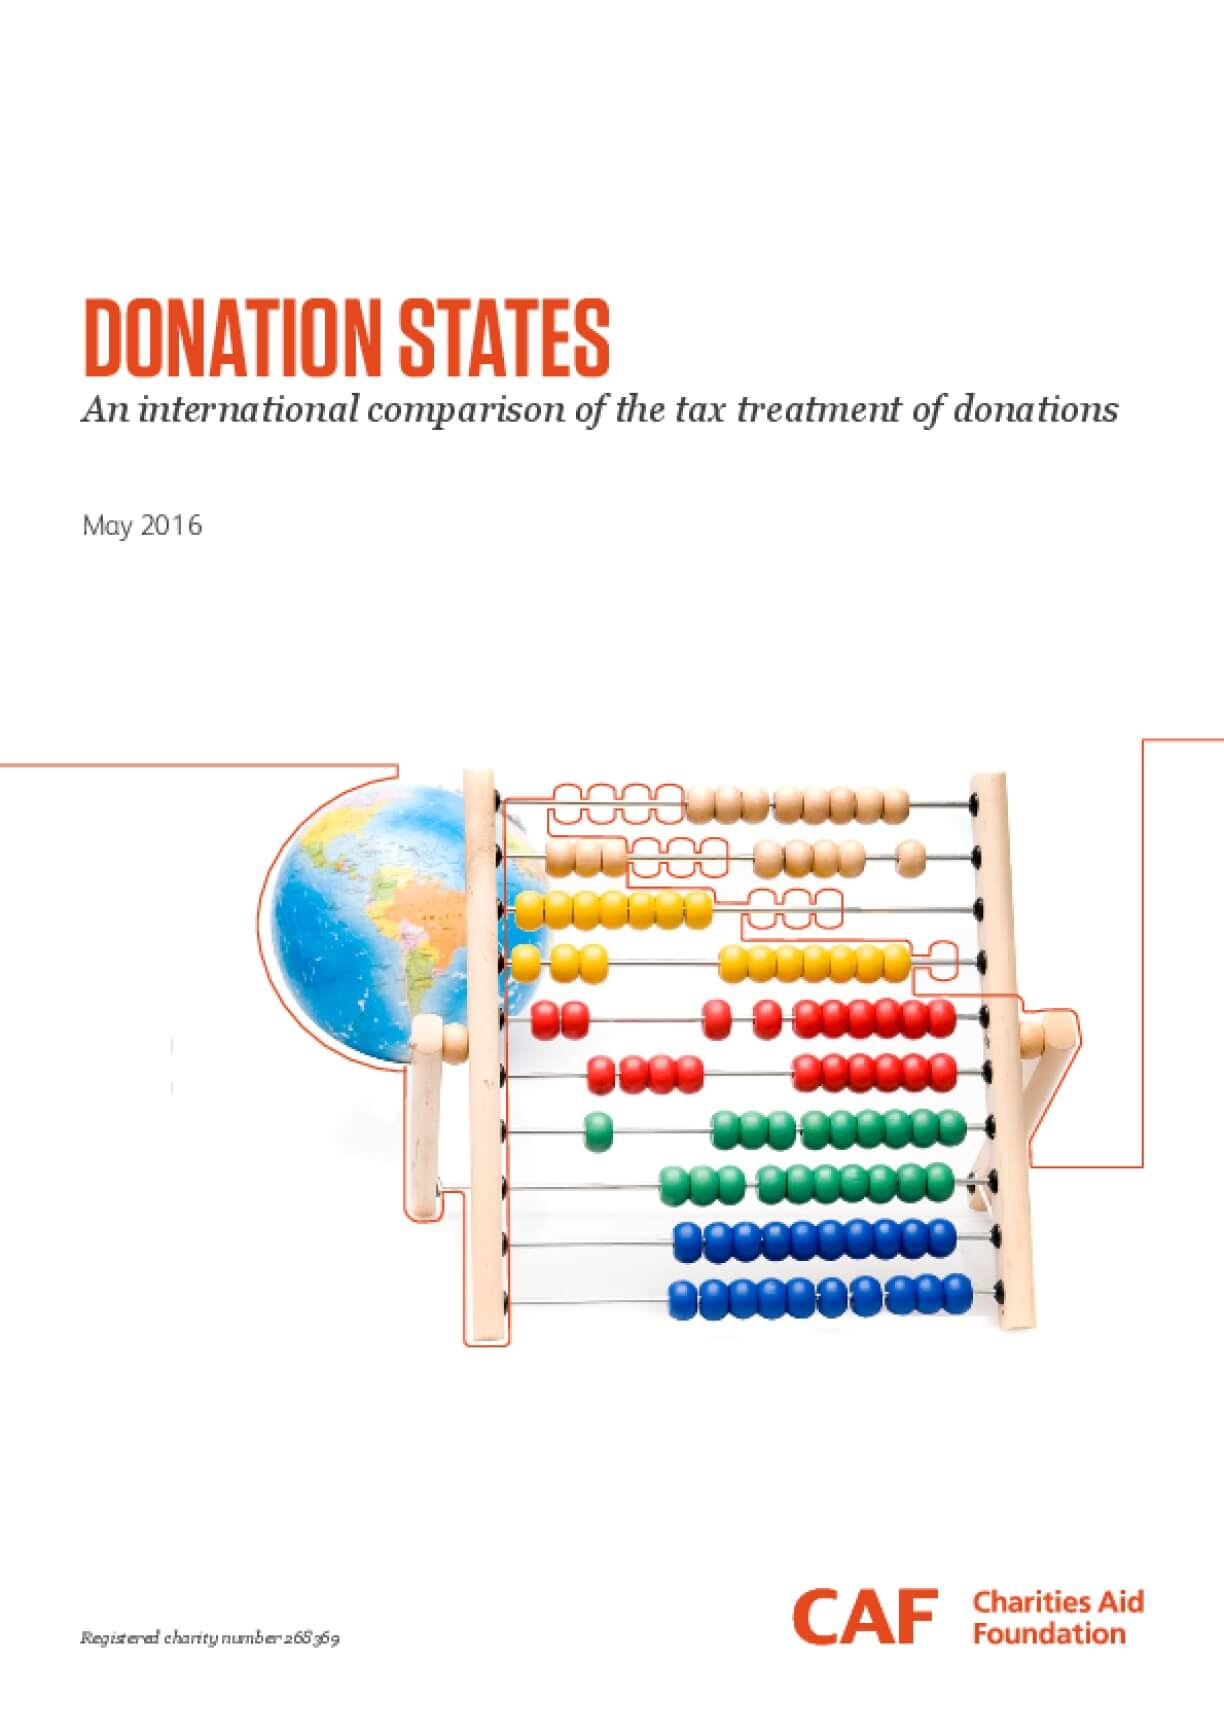 Donation States: An International Comparison of the Tax Treatment of Donations